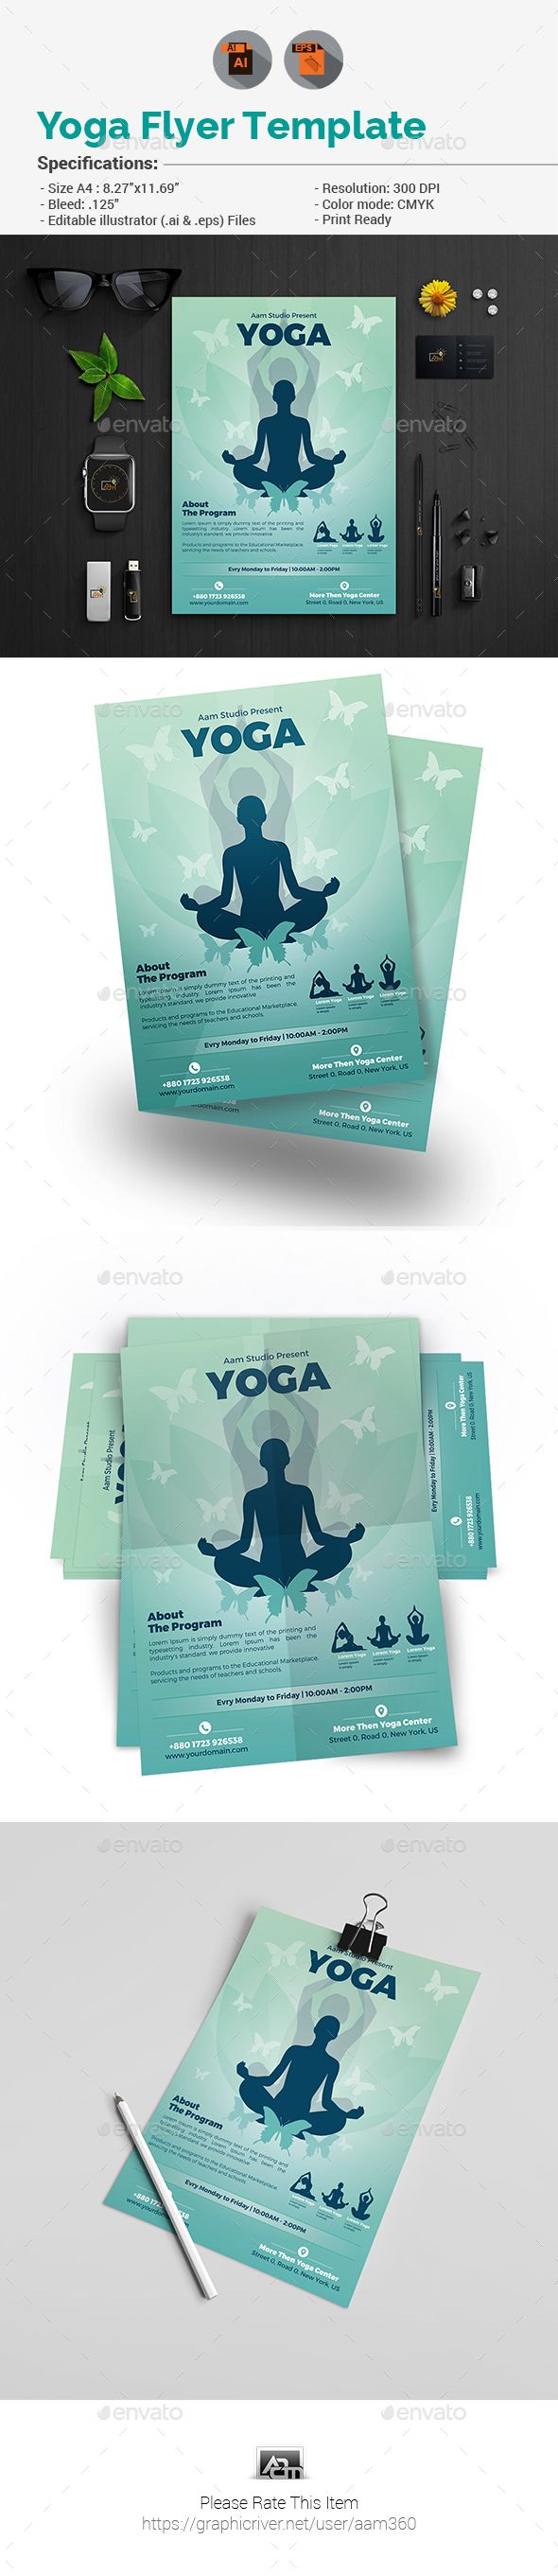 Yoga Flyer Template Vector Eps Ai Illustrator Flyer Templates